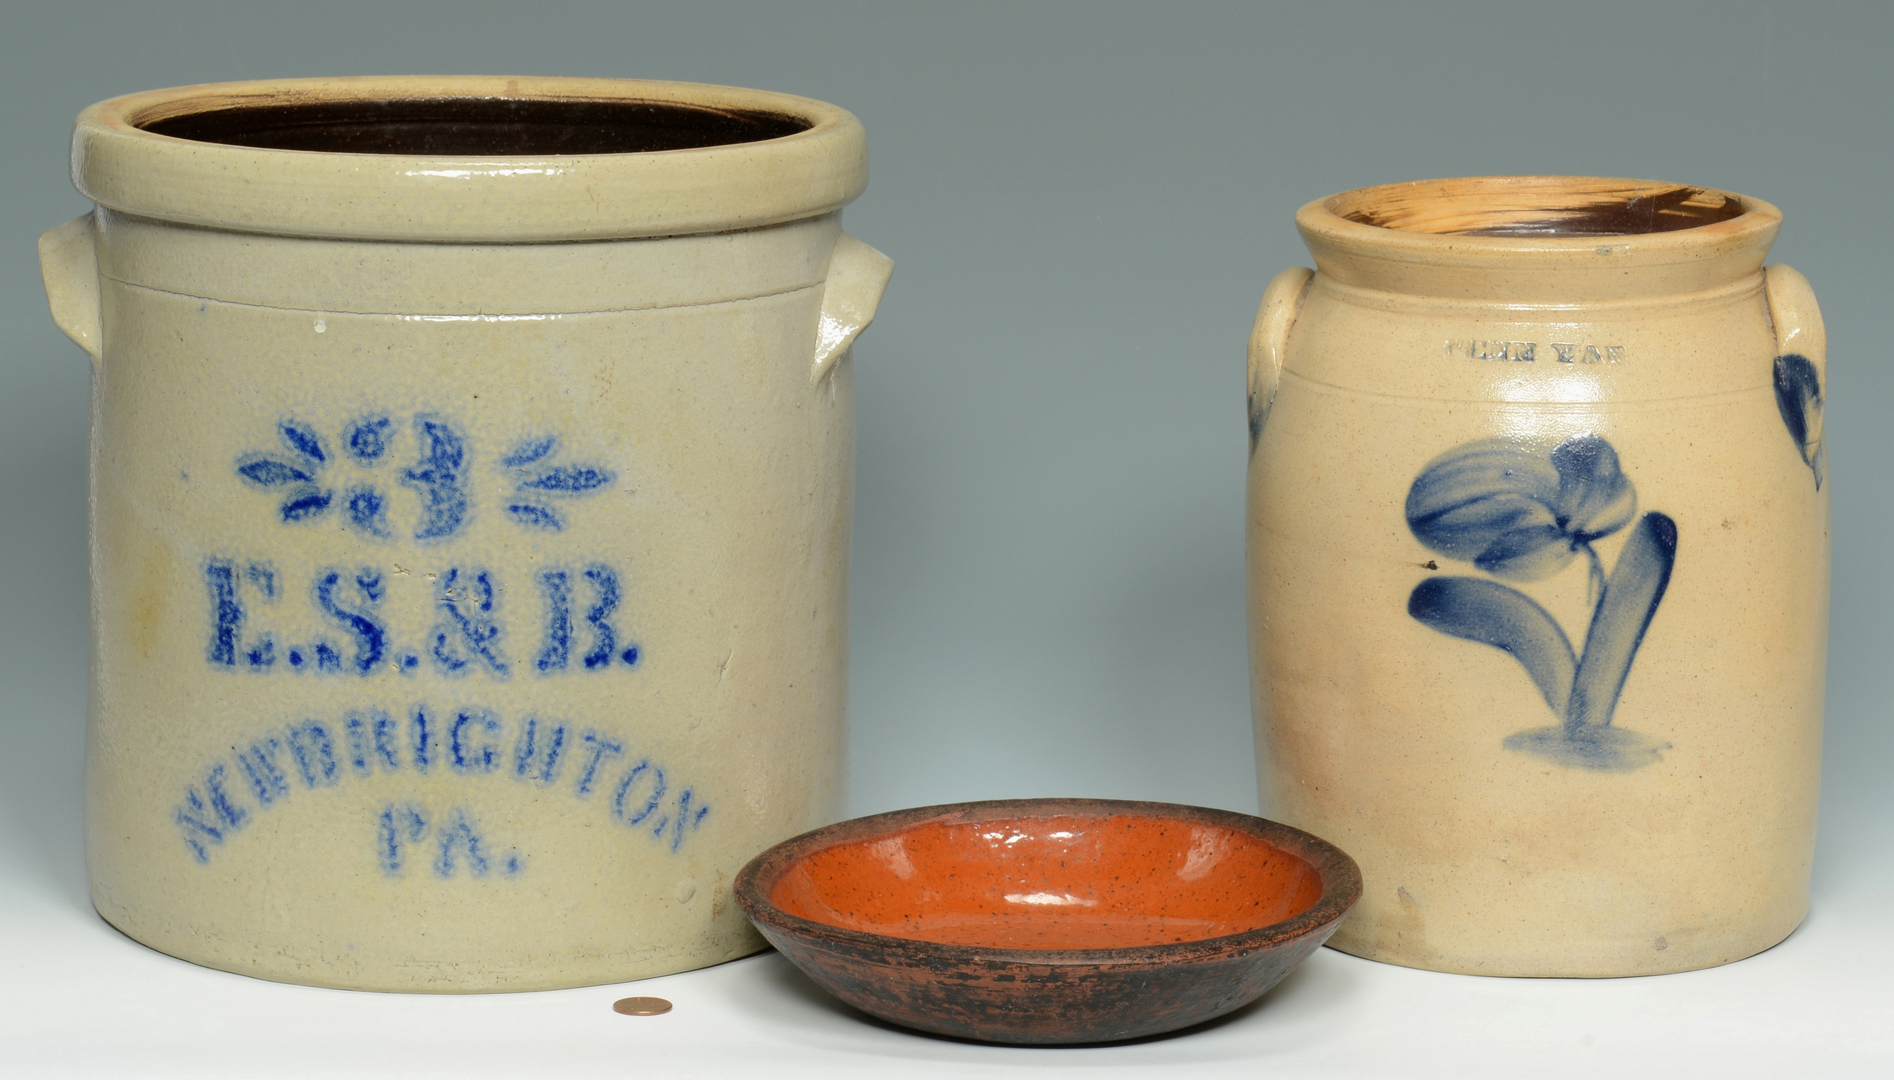 Lot 3088323: 3 PA Pottery Items, 2 with Cobalt